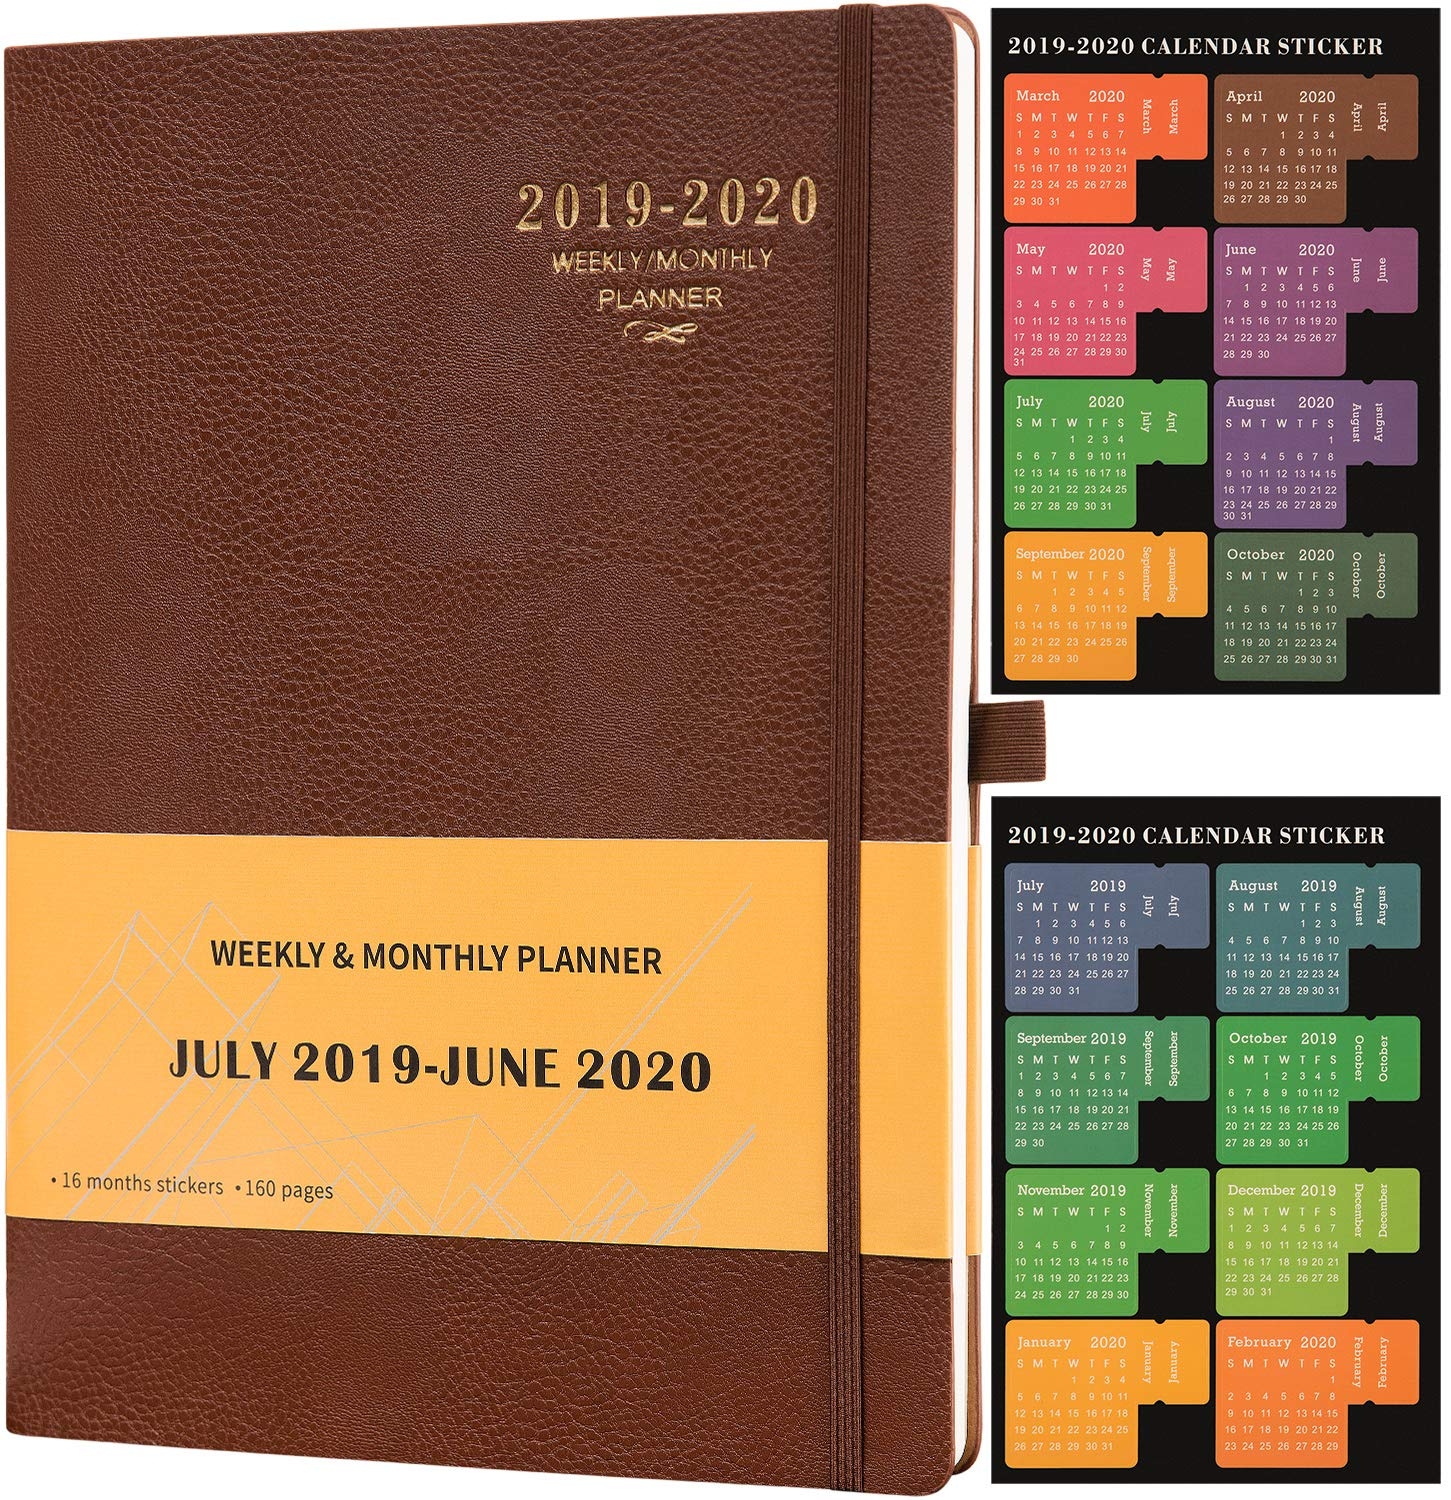 Planner 2019-2020 - Academic Weekly & Monthly Planner, 8 5